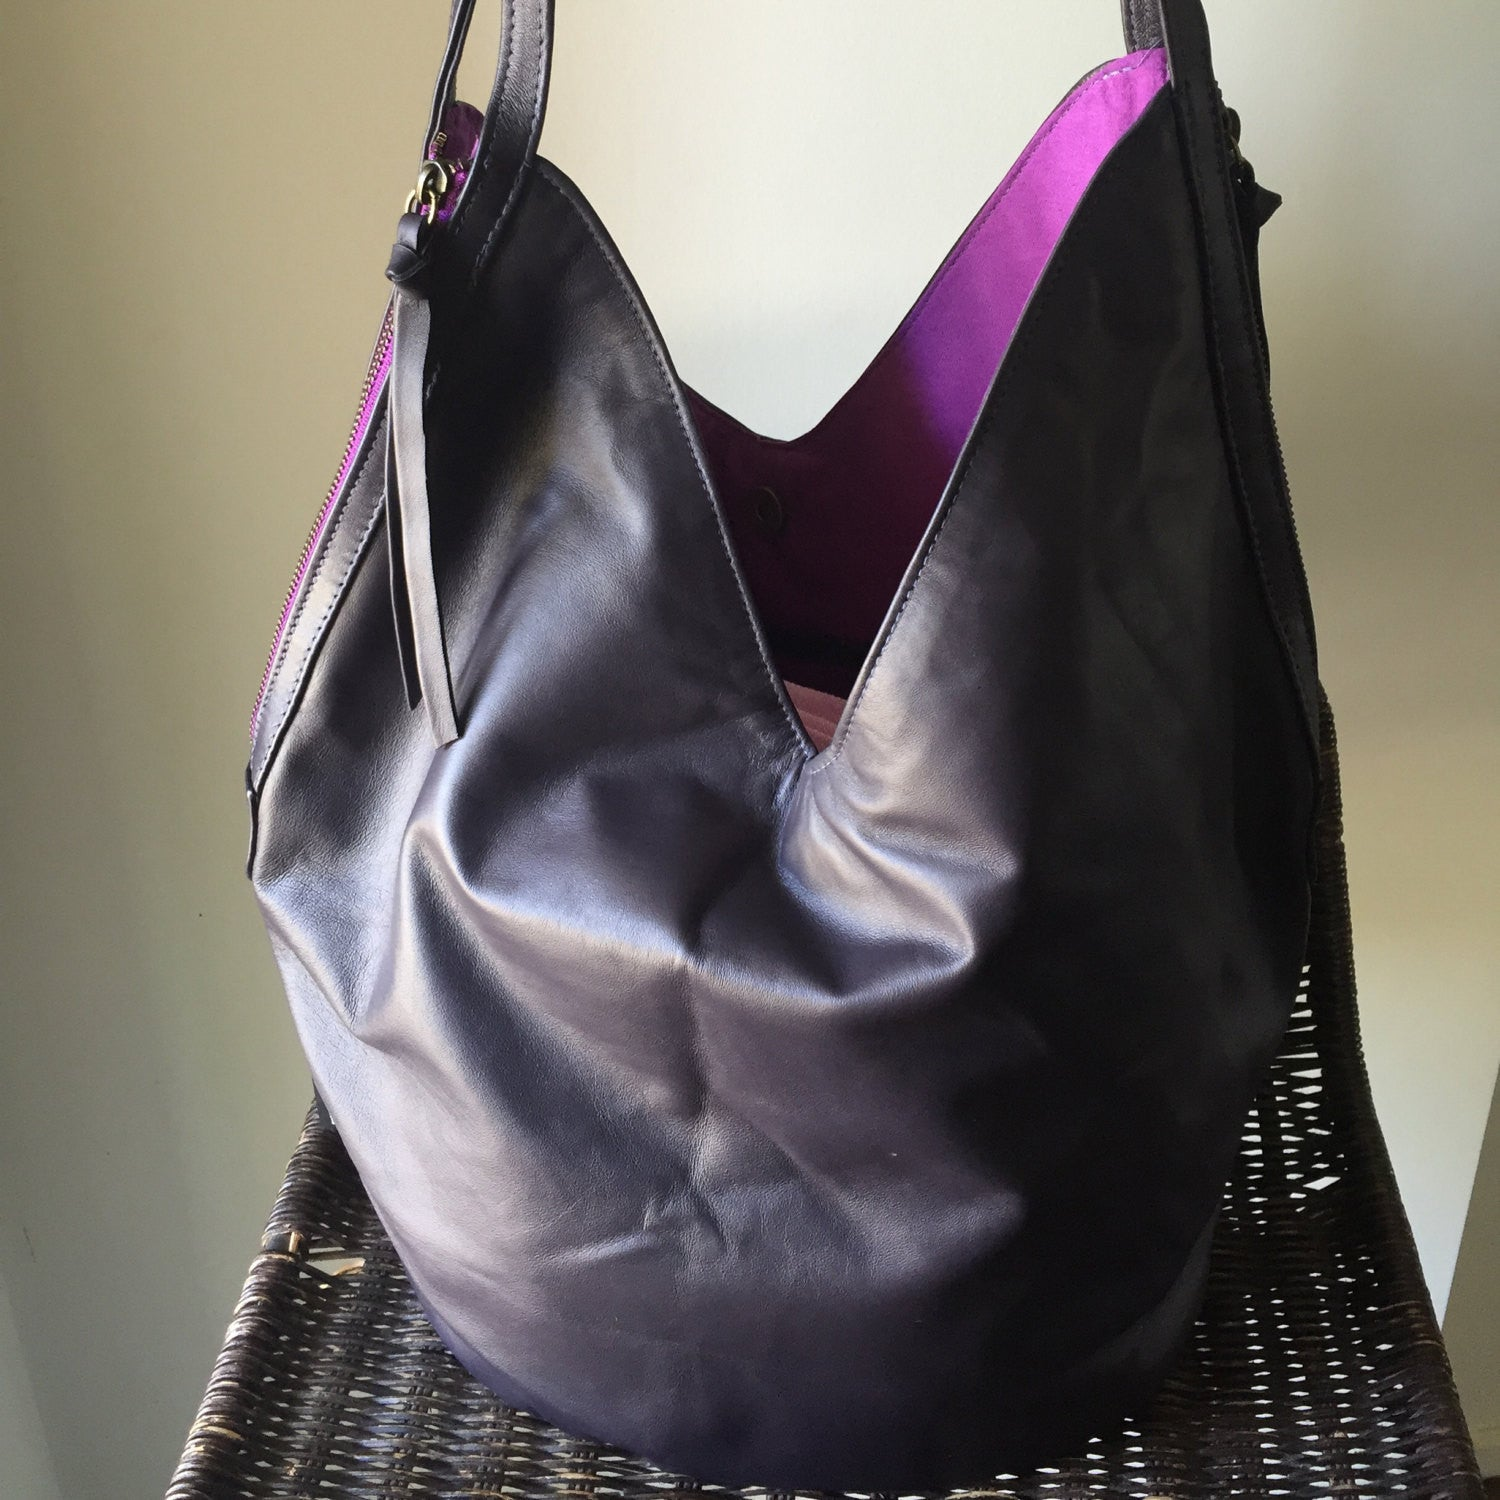 The Shift - Soft lambskin leather handbag. Two toned and easy to open with twin zippers